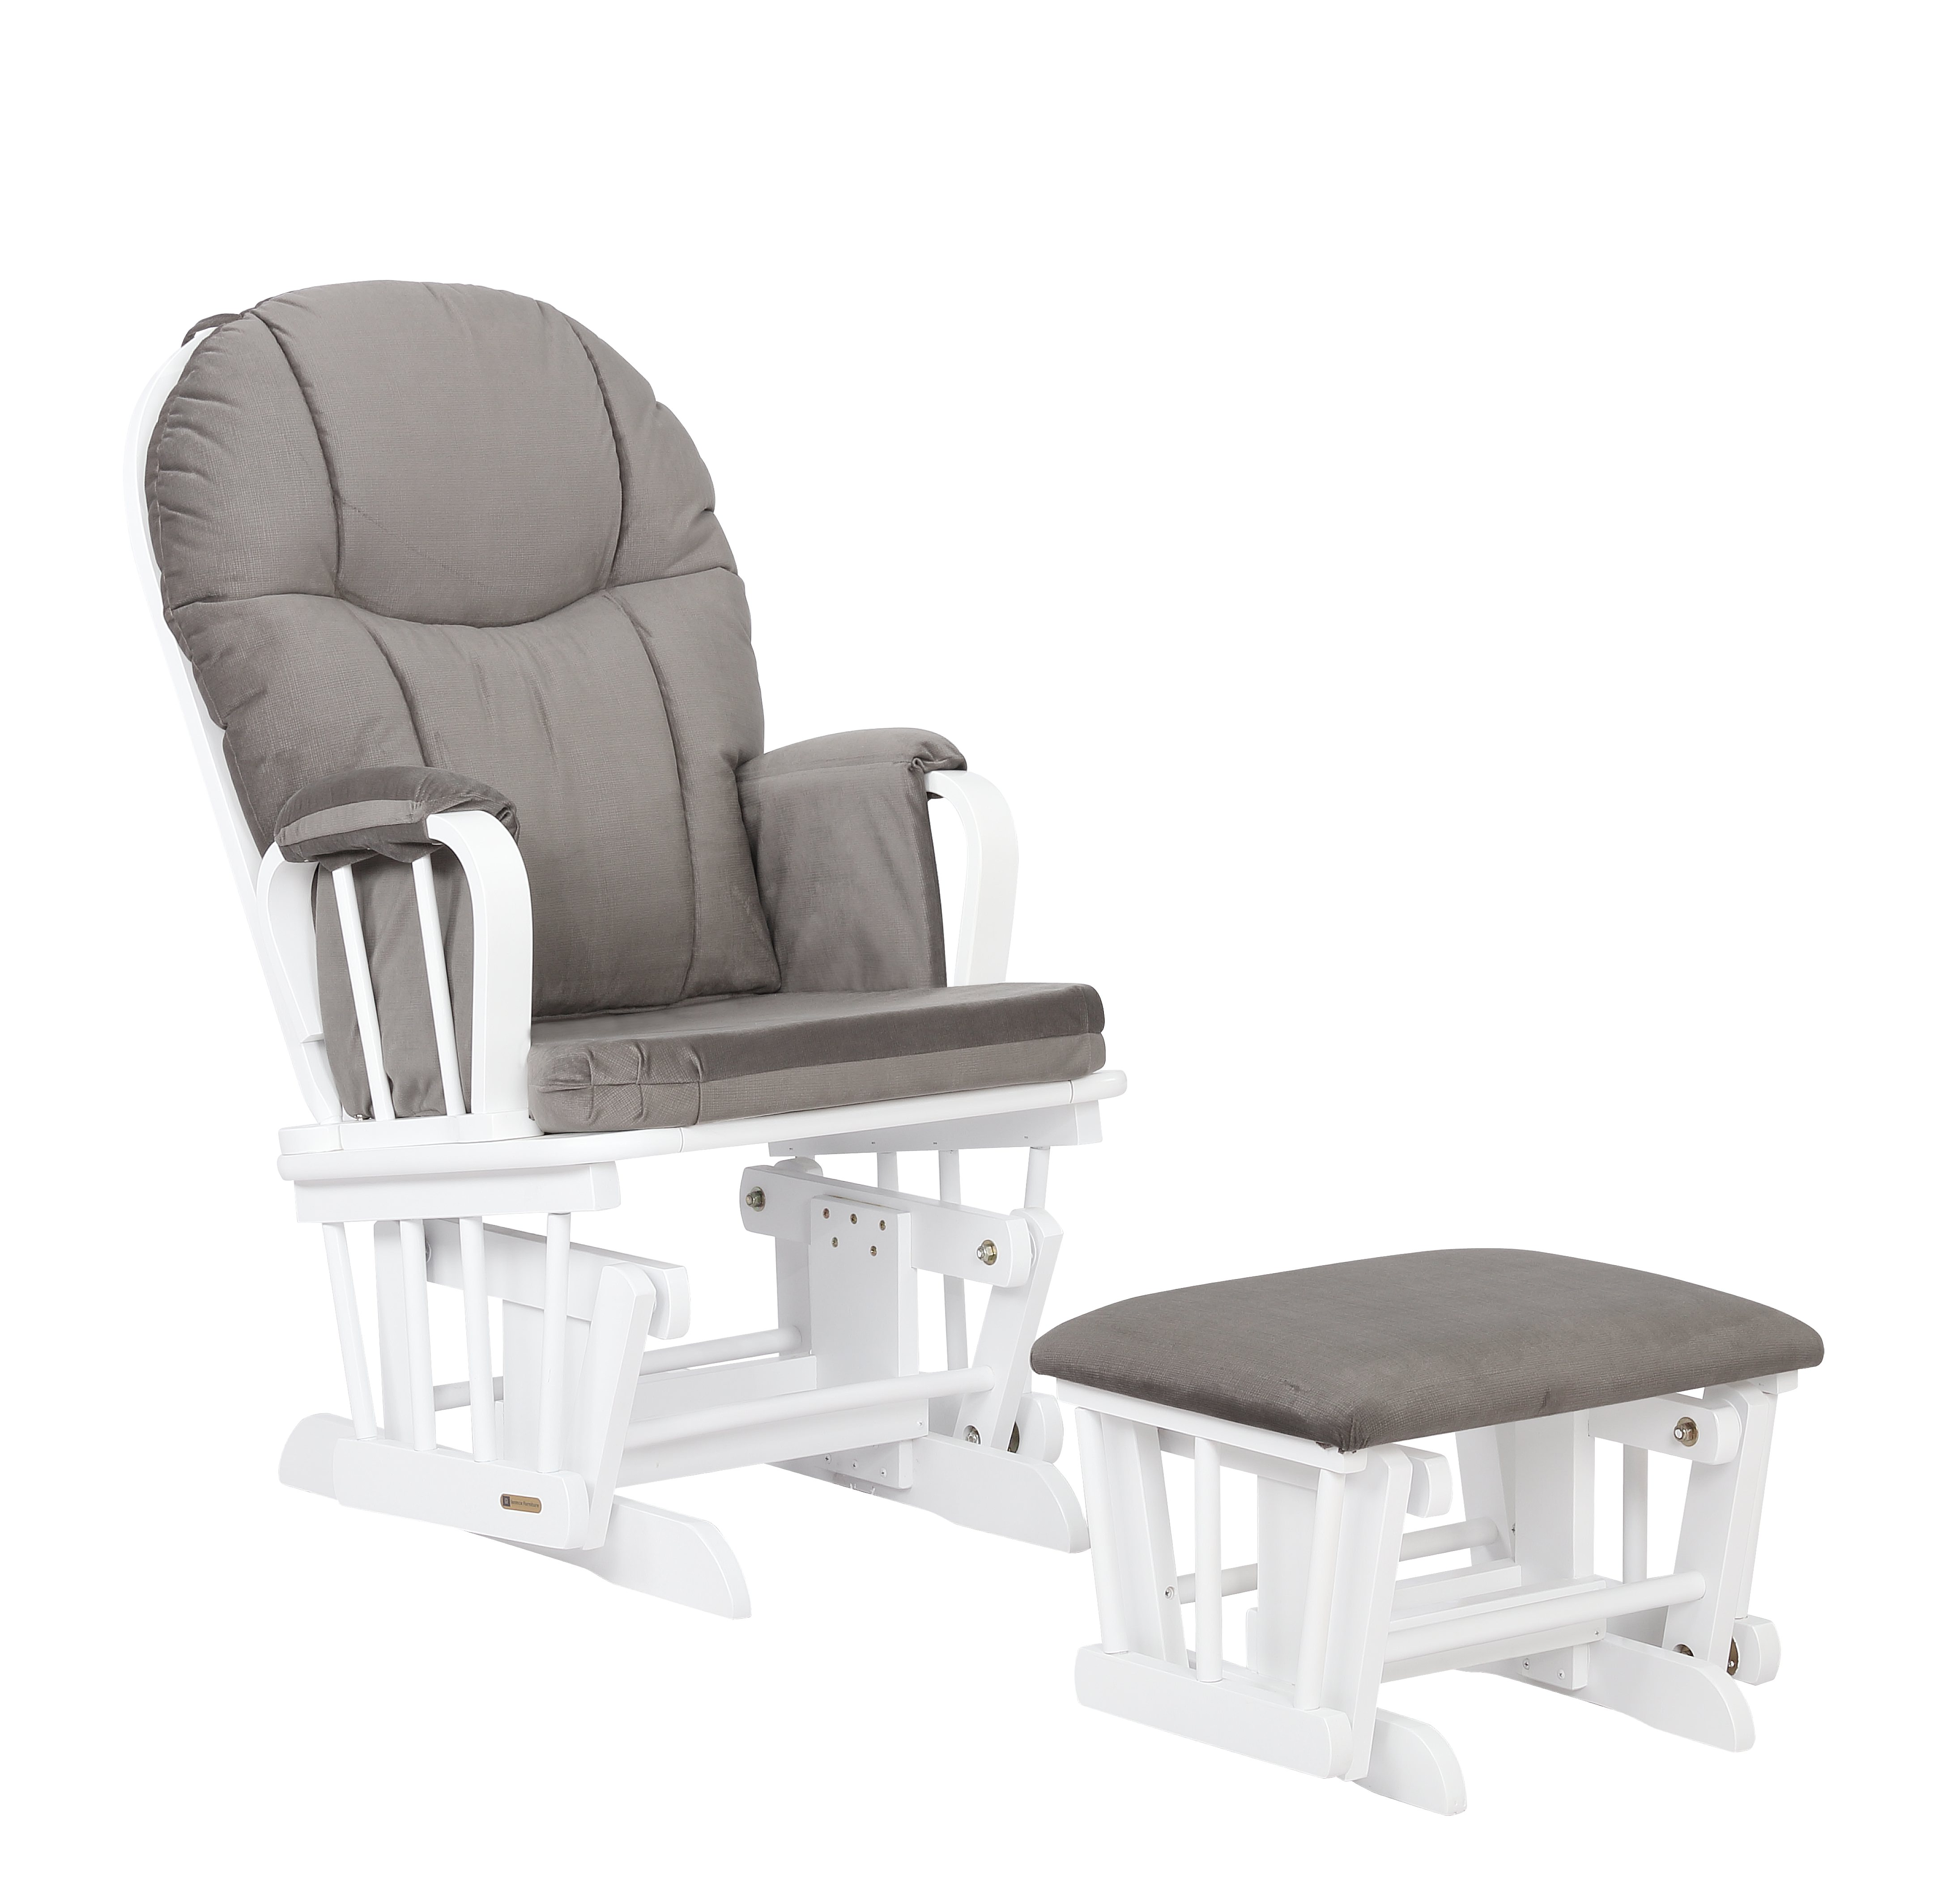 Extra Wide Glider Chair And Ottoman Combo White Light